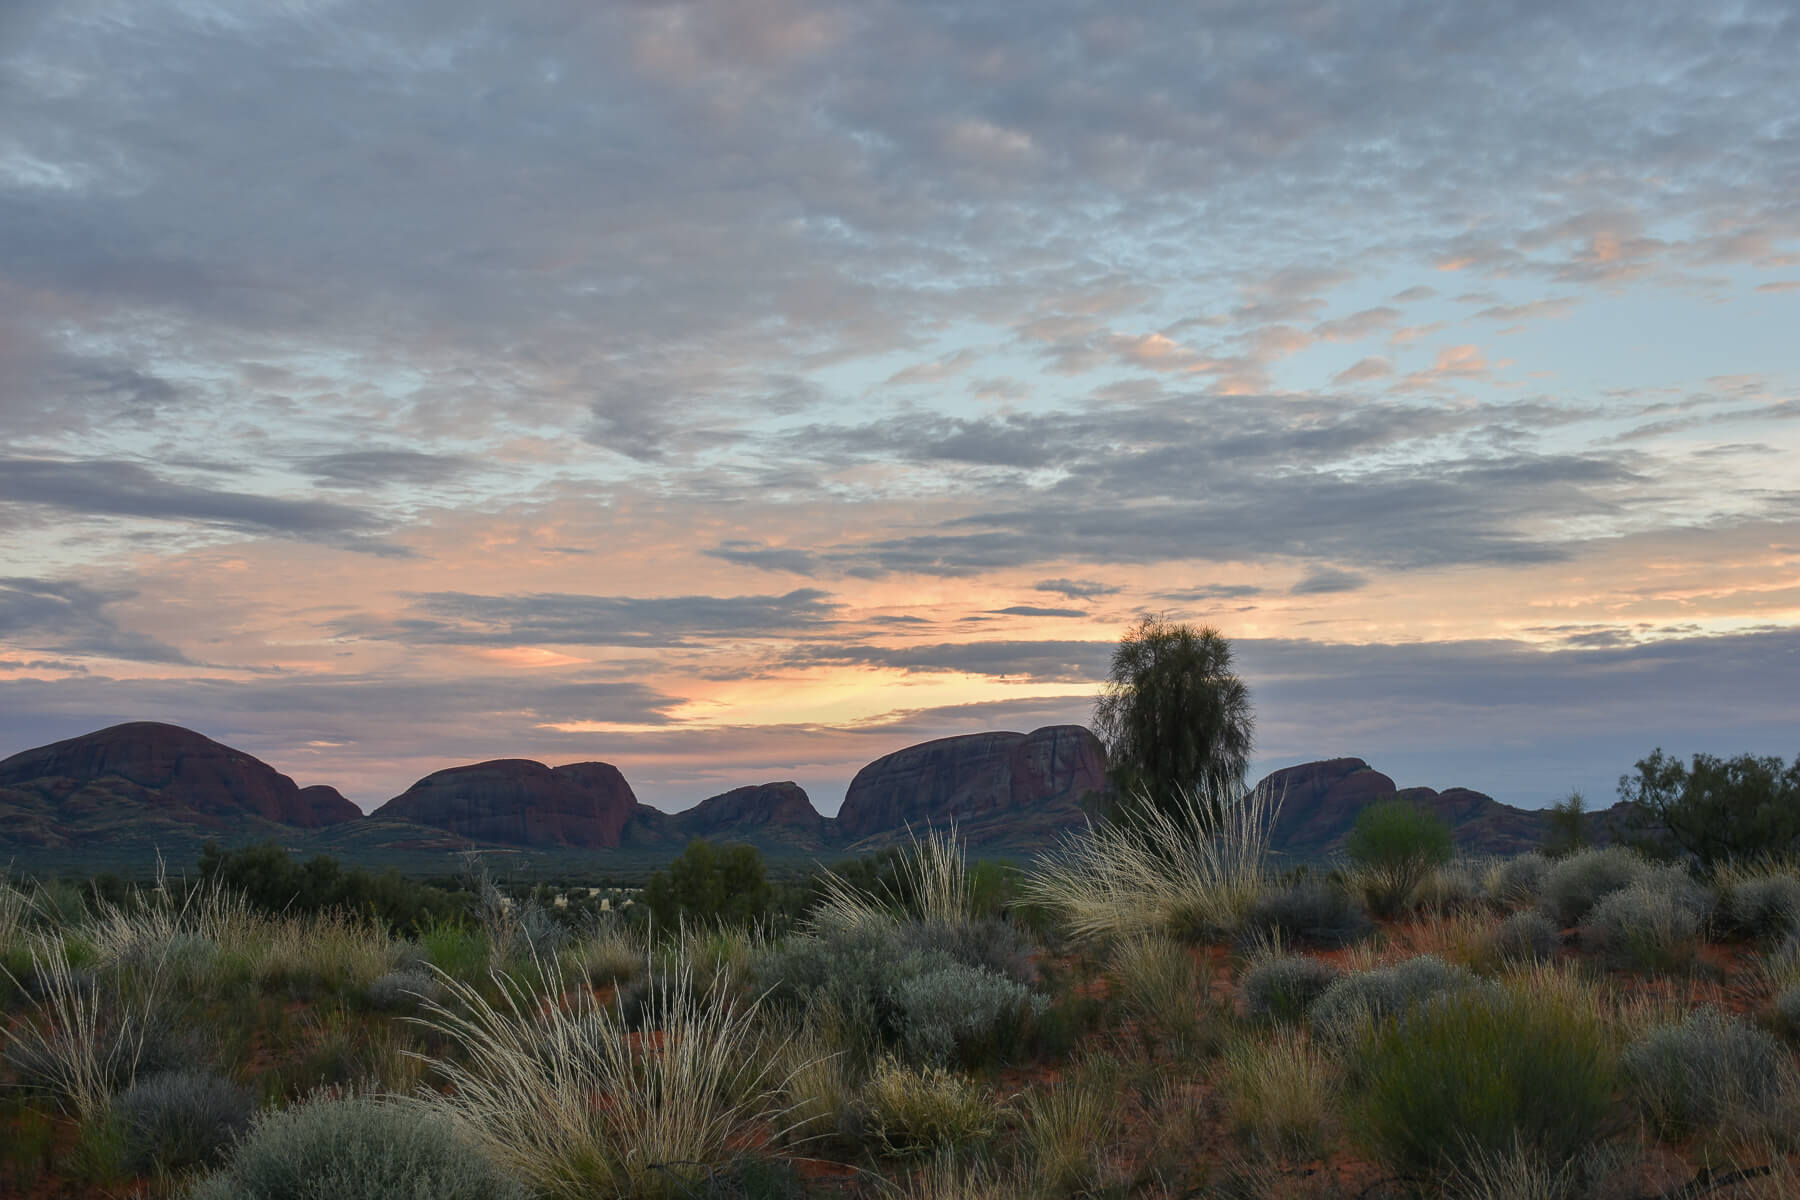 Sunrise forming over Kata Tjuta in the distance